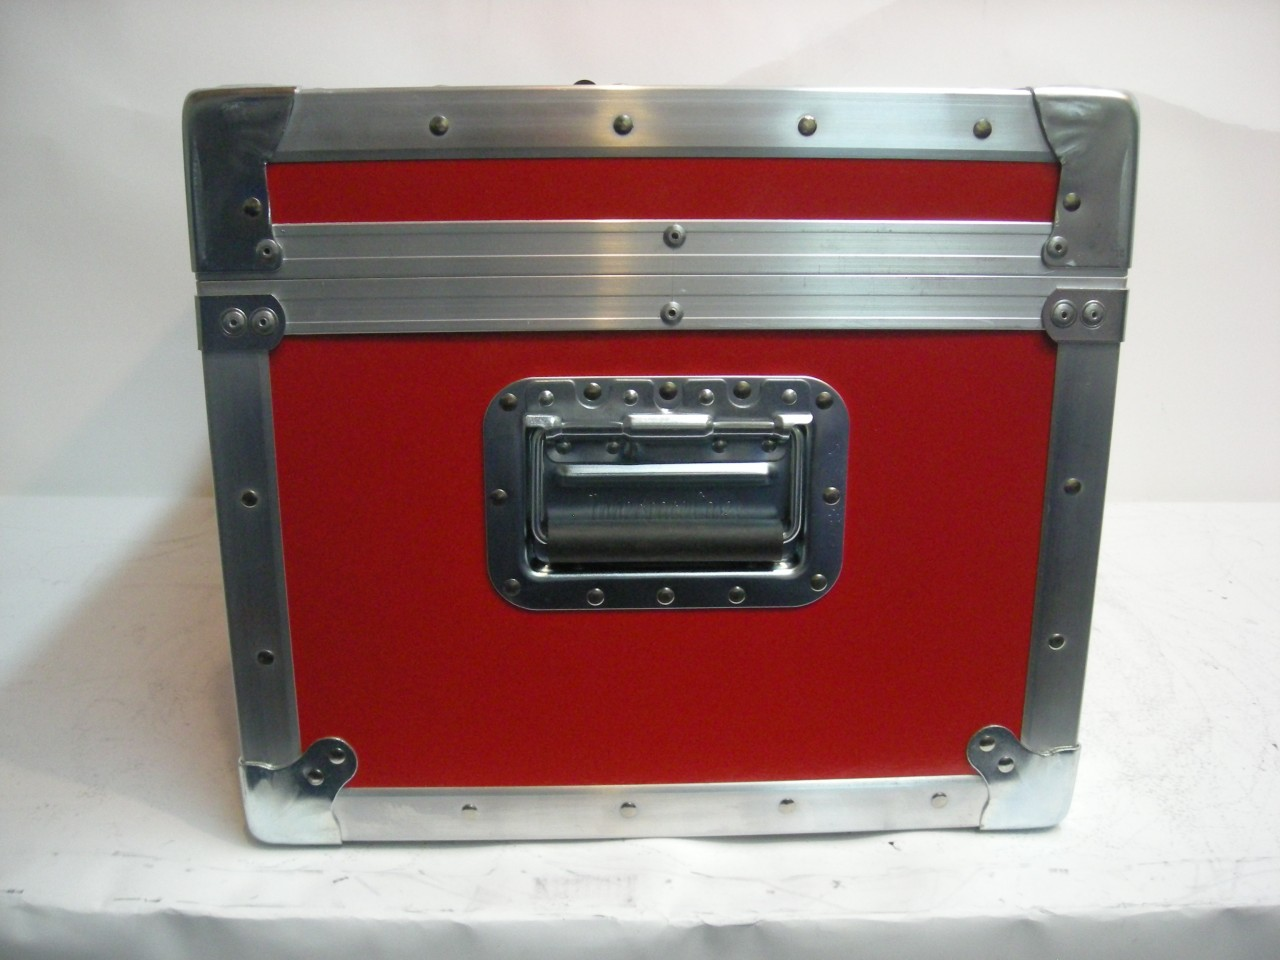 Cooke S4 Lens (6 Position) Custom ATA Shipping Case - Exterior View Side